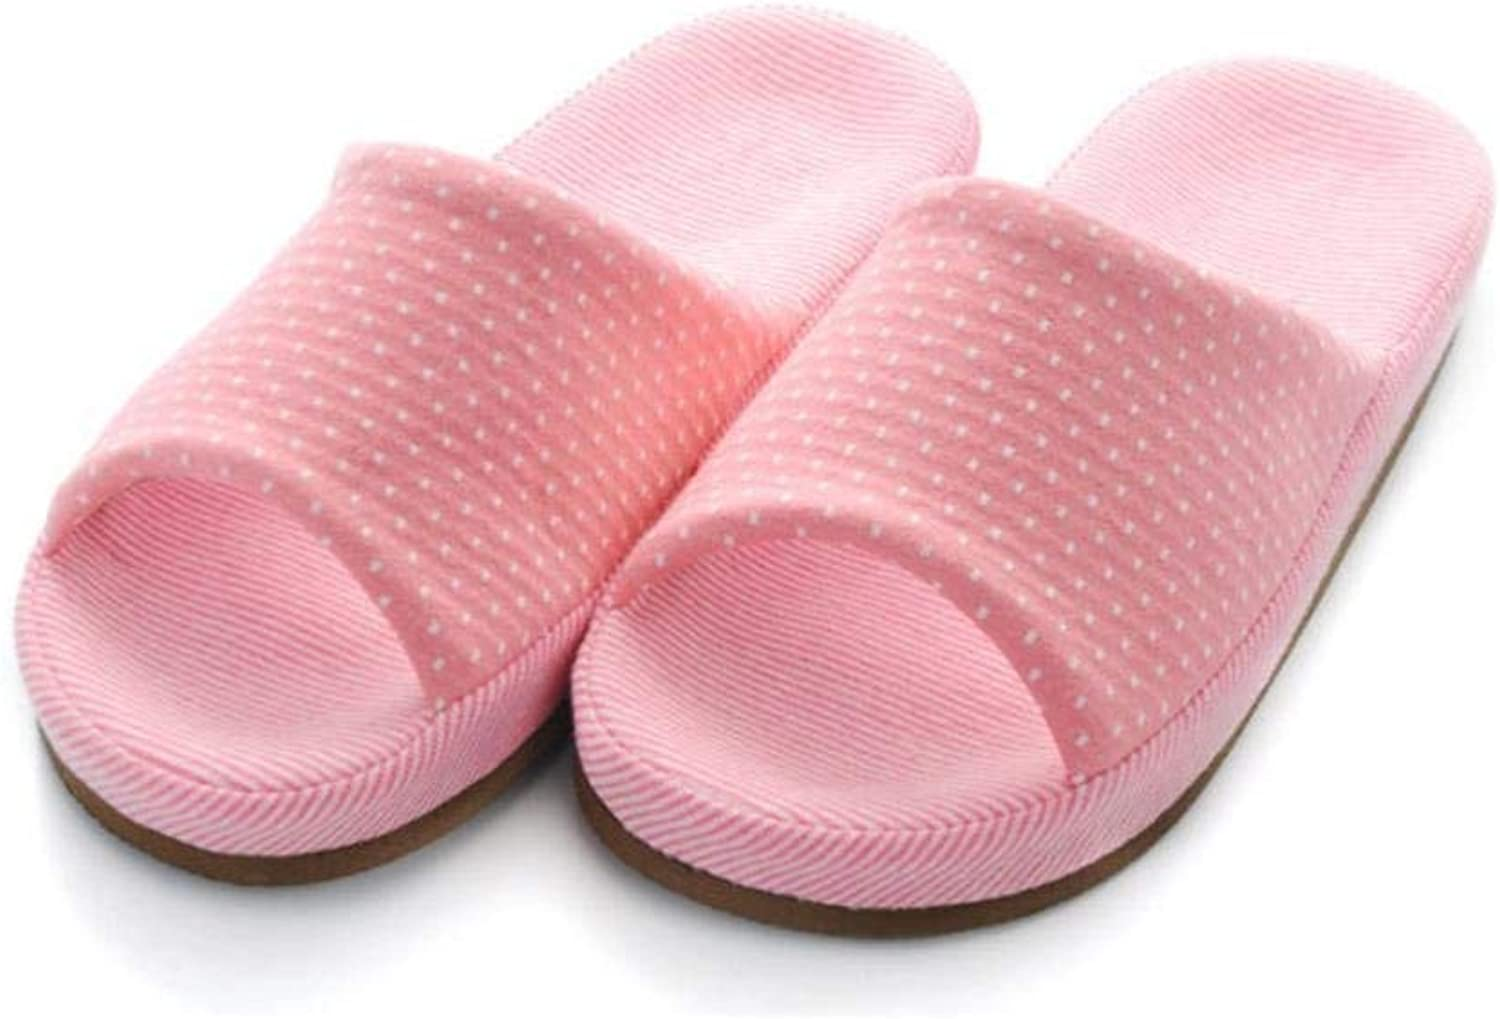 Lady Slippers Women Four Seasons Home shoes Slippers Ladies Soft Indoor and Leisure Home Girl Slippers Pink for Women